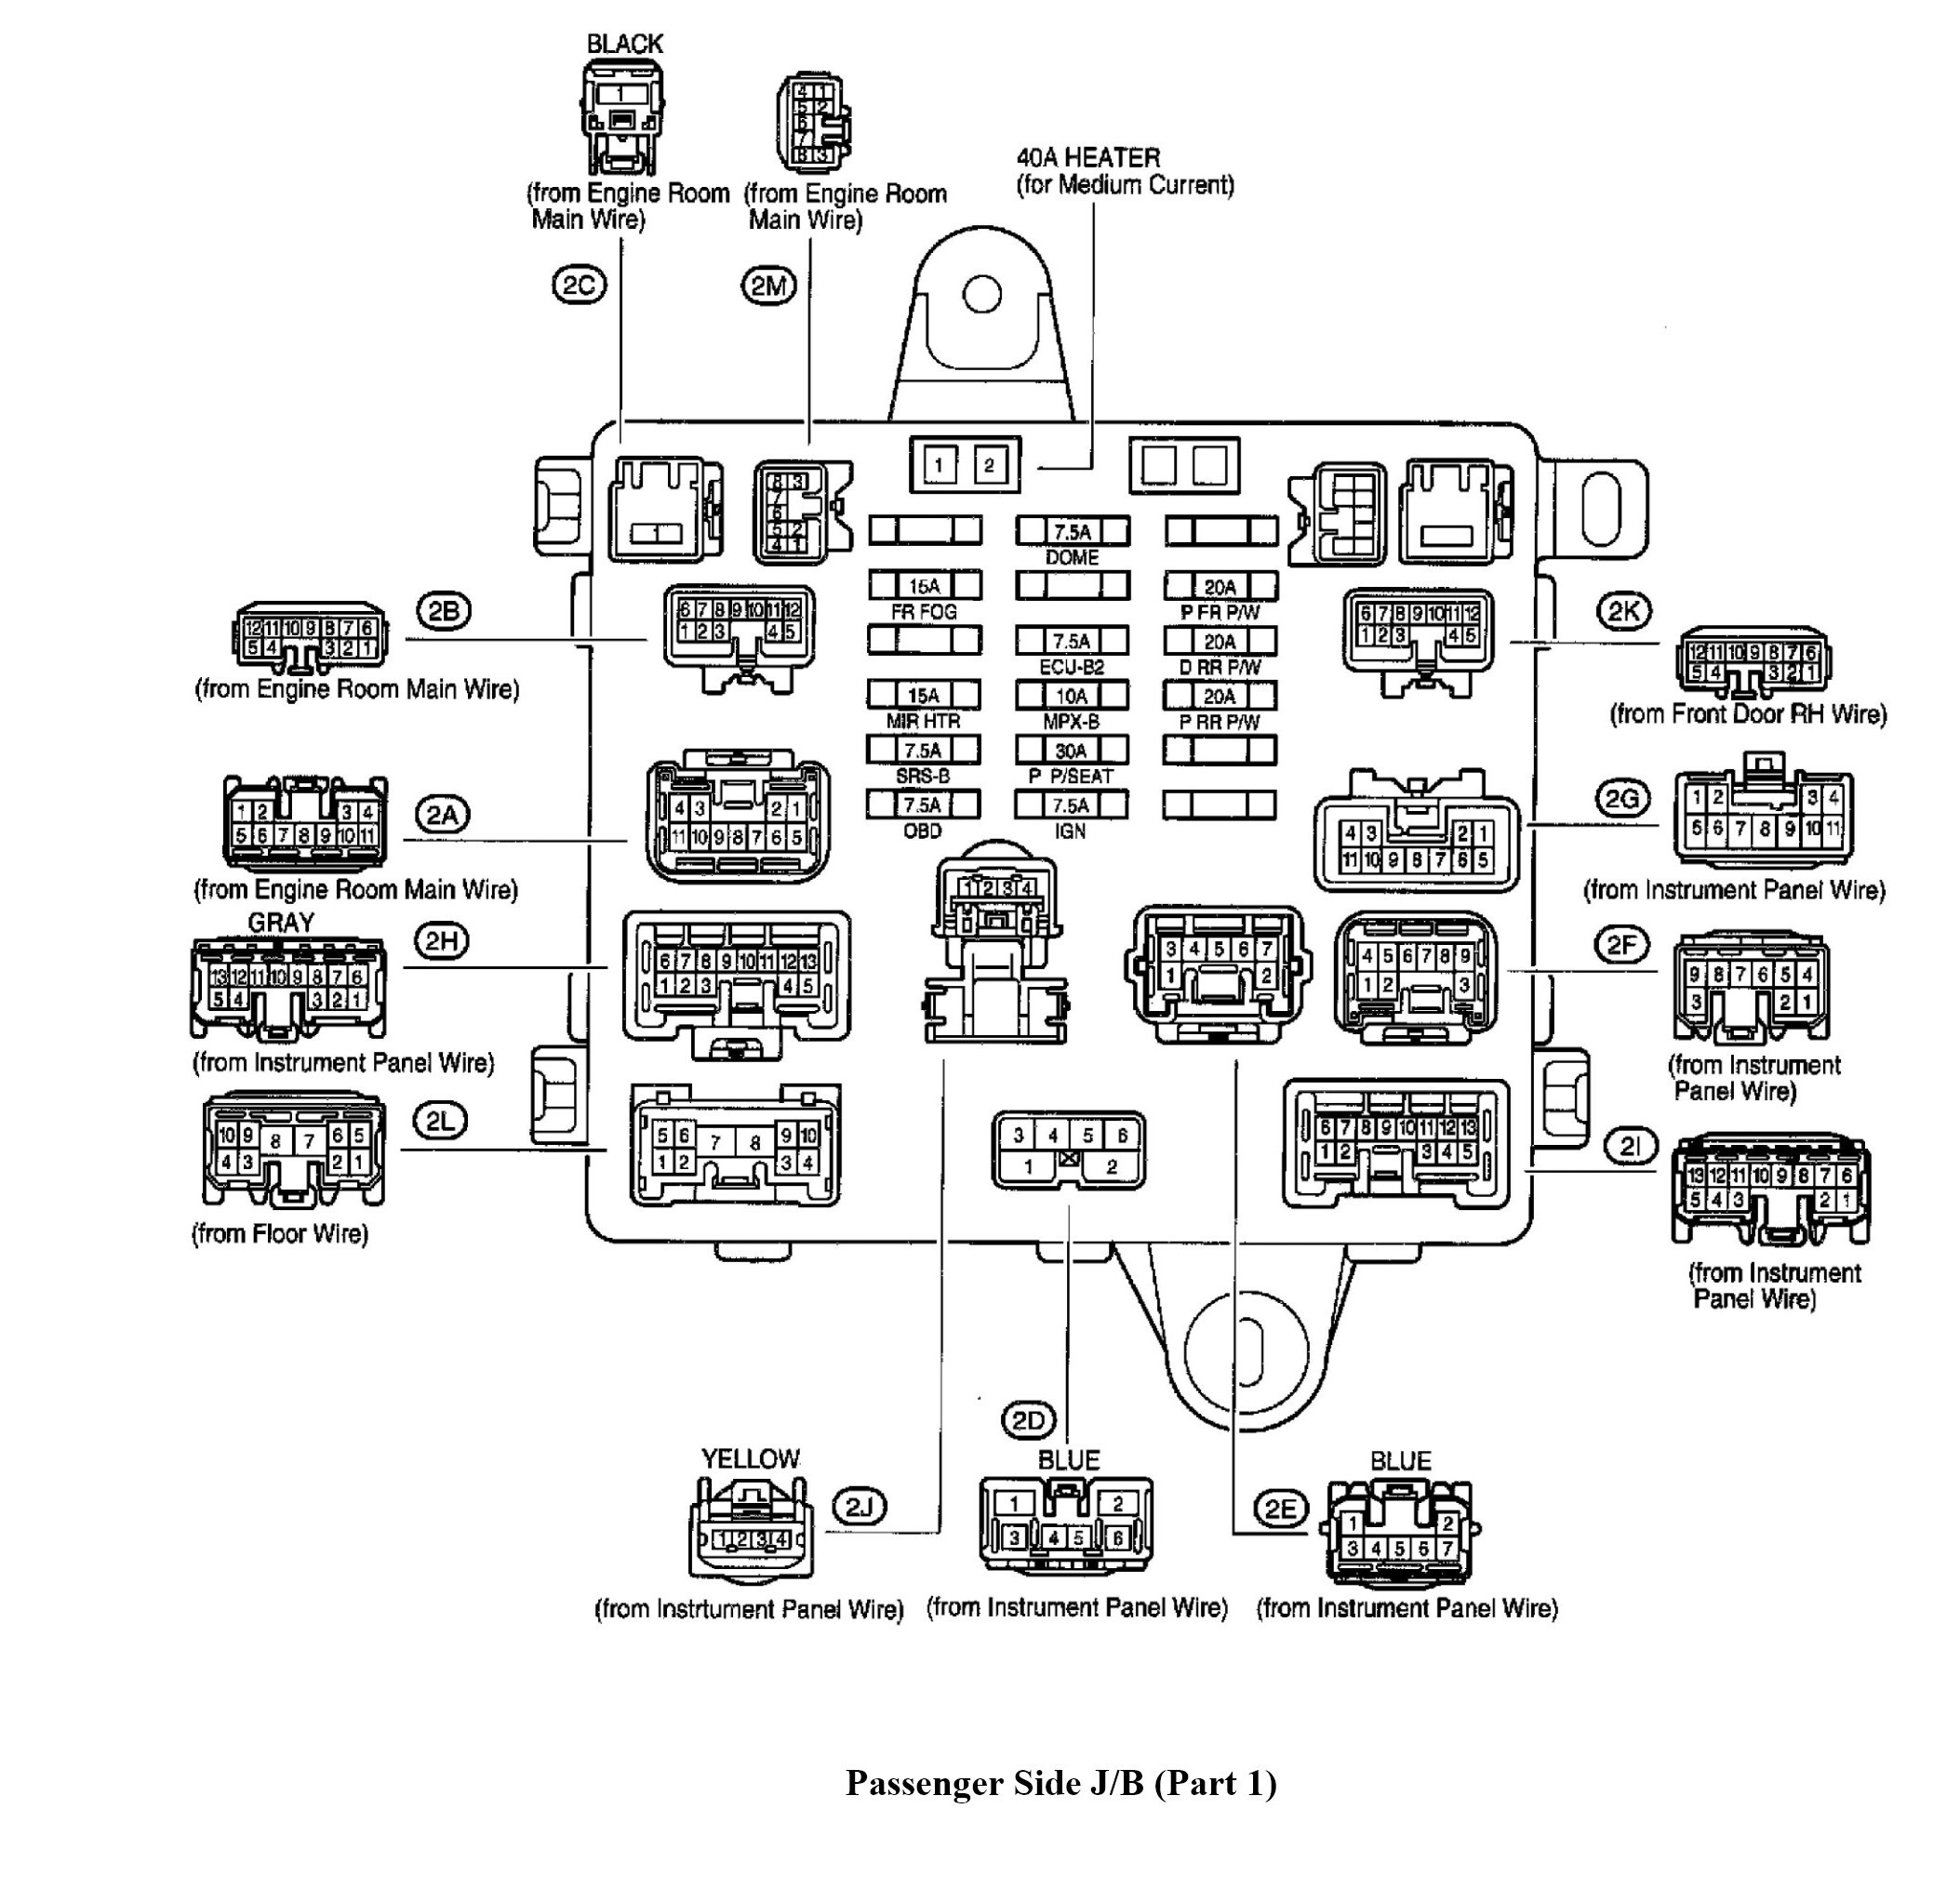 fuse diagram for 1993 lexus ls400